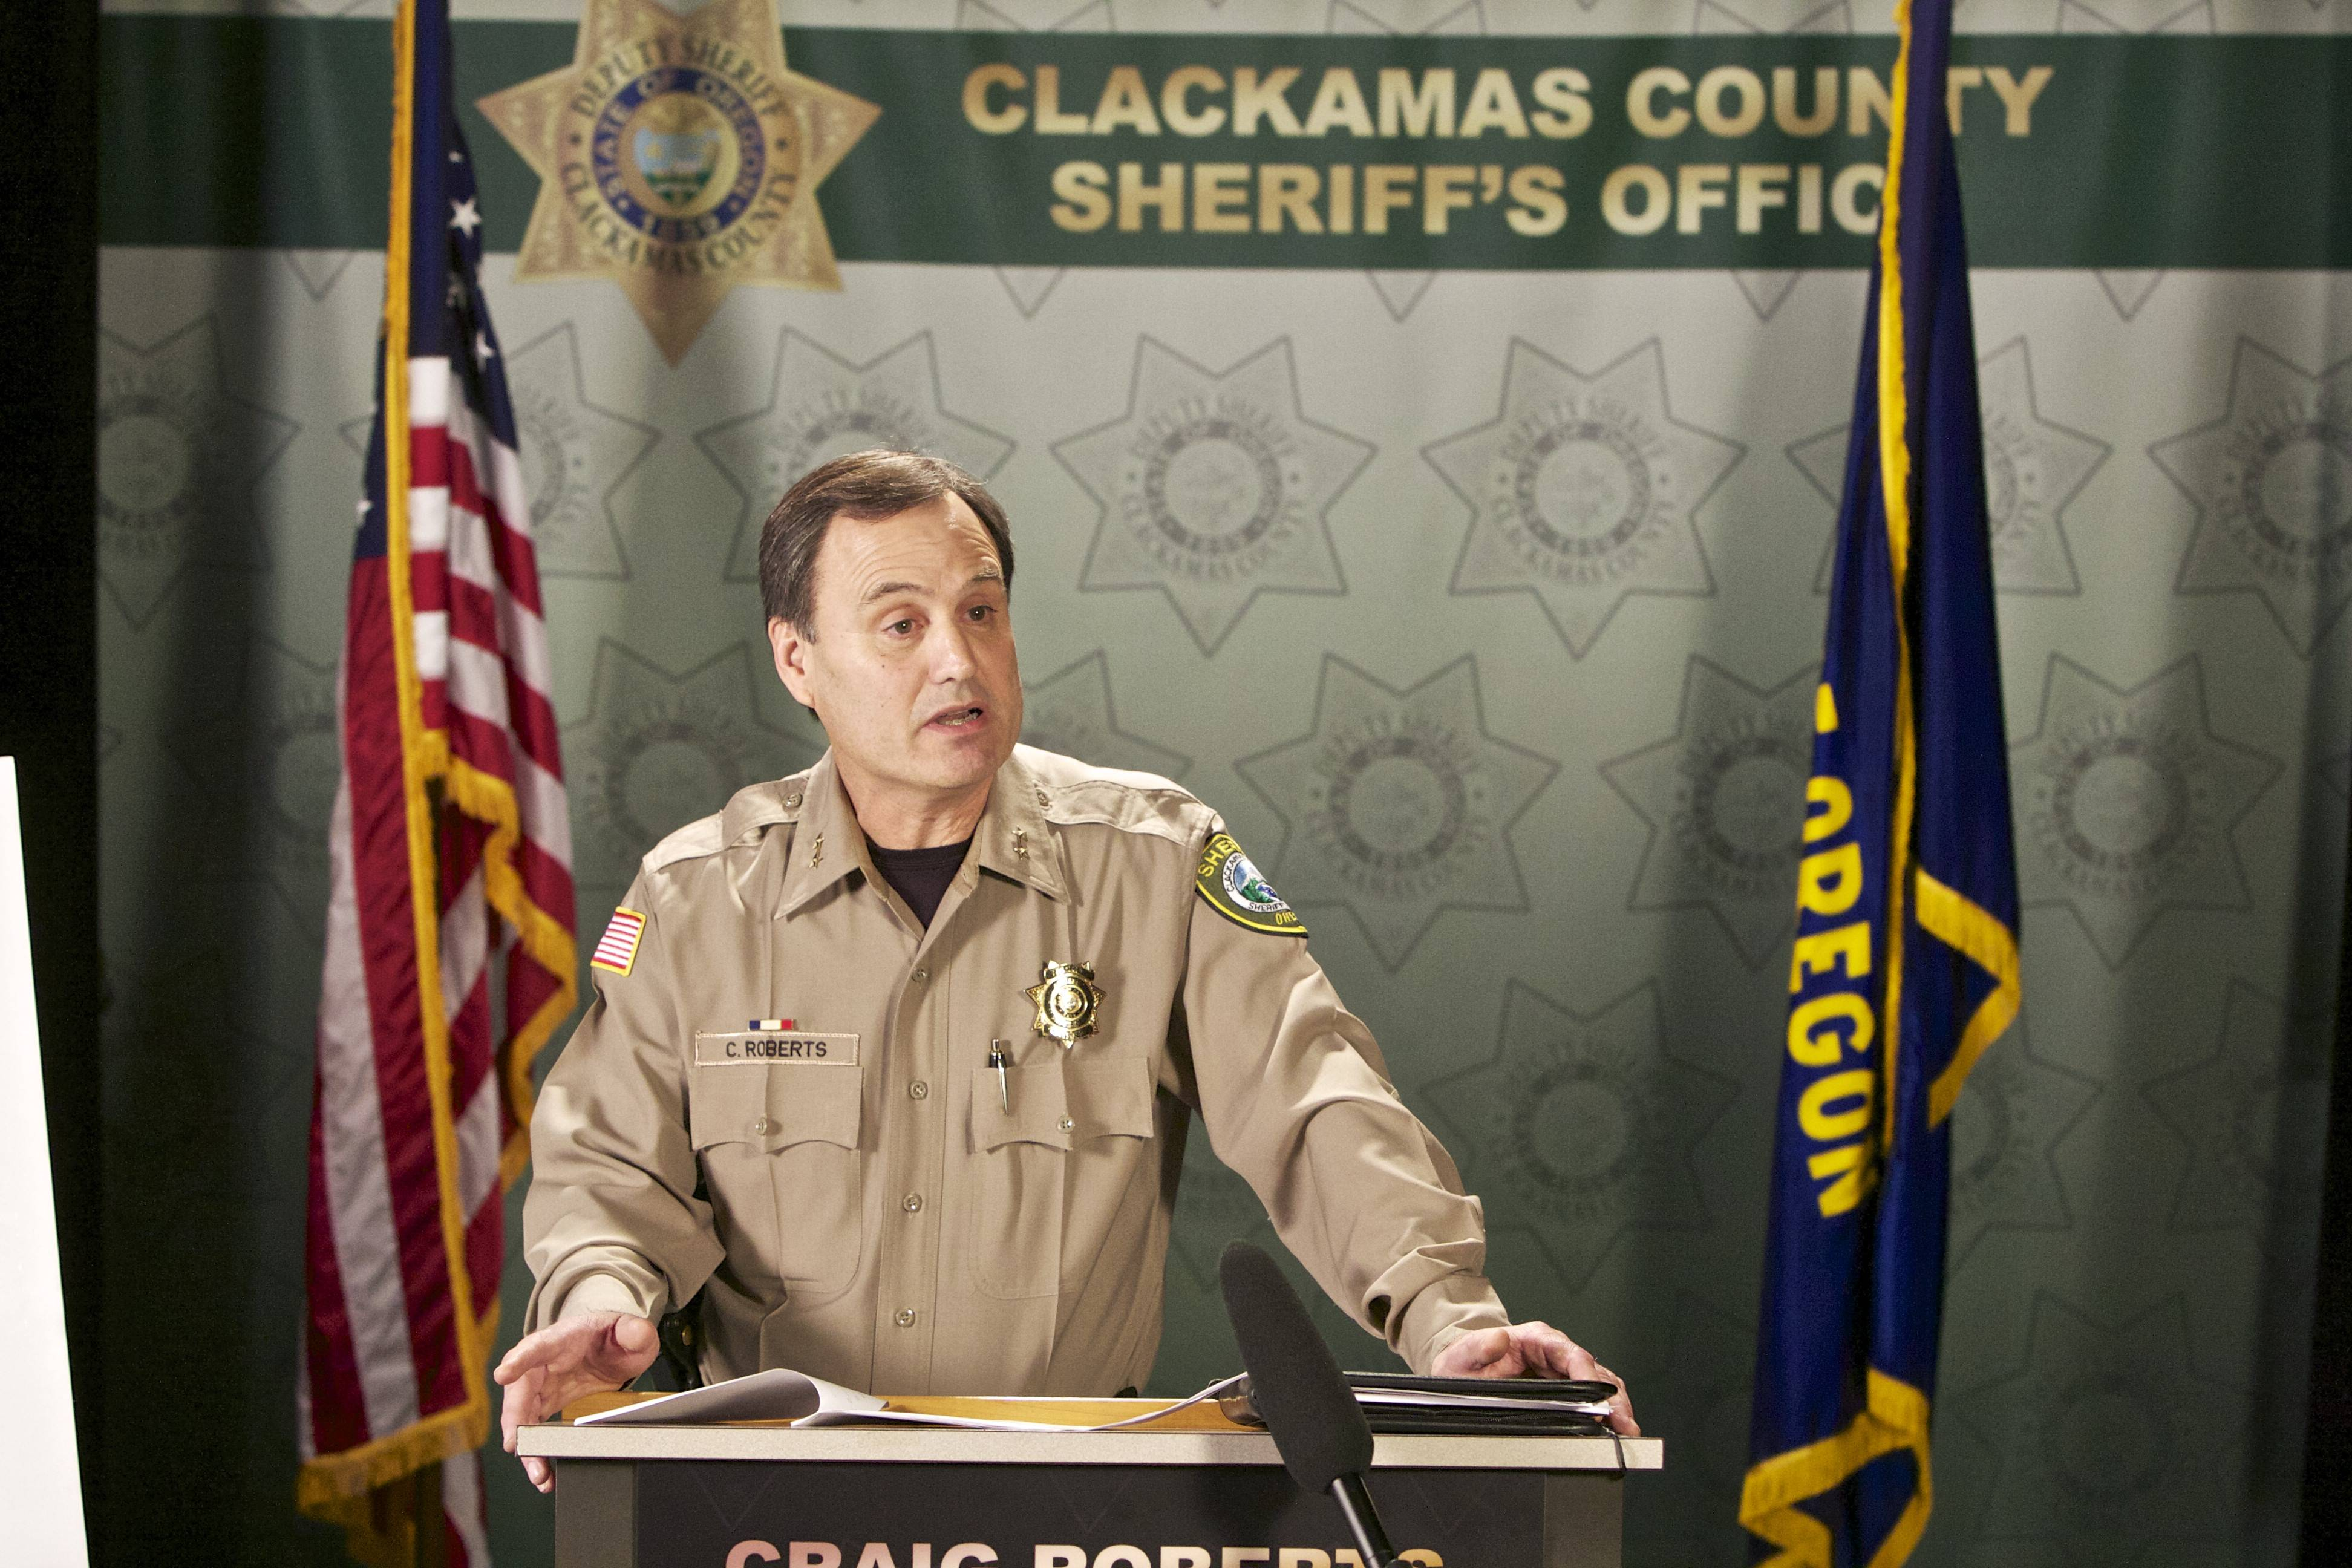 Clackamas County Sheriff Craig Roberts. A federal judge has ruled that Clackamas County in Oregon violated an immigrant woman's constitutional rights by holding her in jail for two weeks at the request of U.S. Immigration and Customs Enforcement, so that the agency could investigate whether she is subject to deportation.